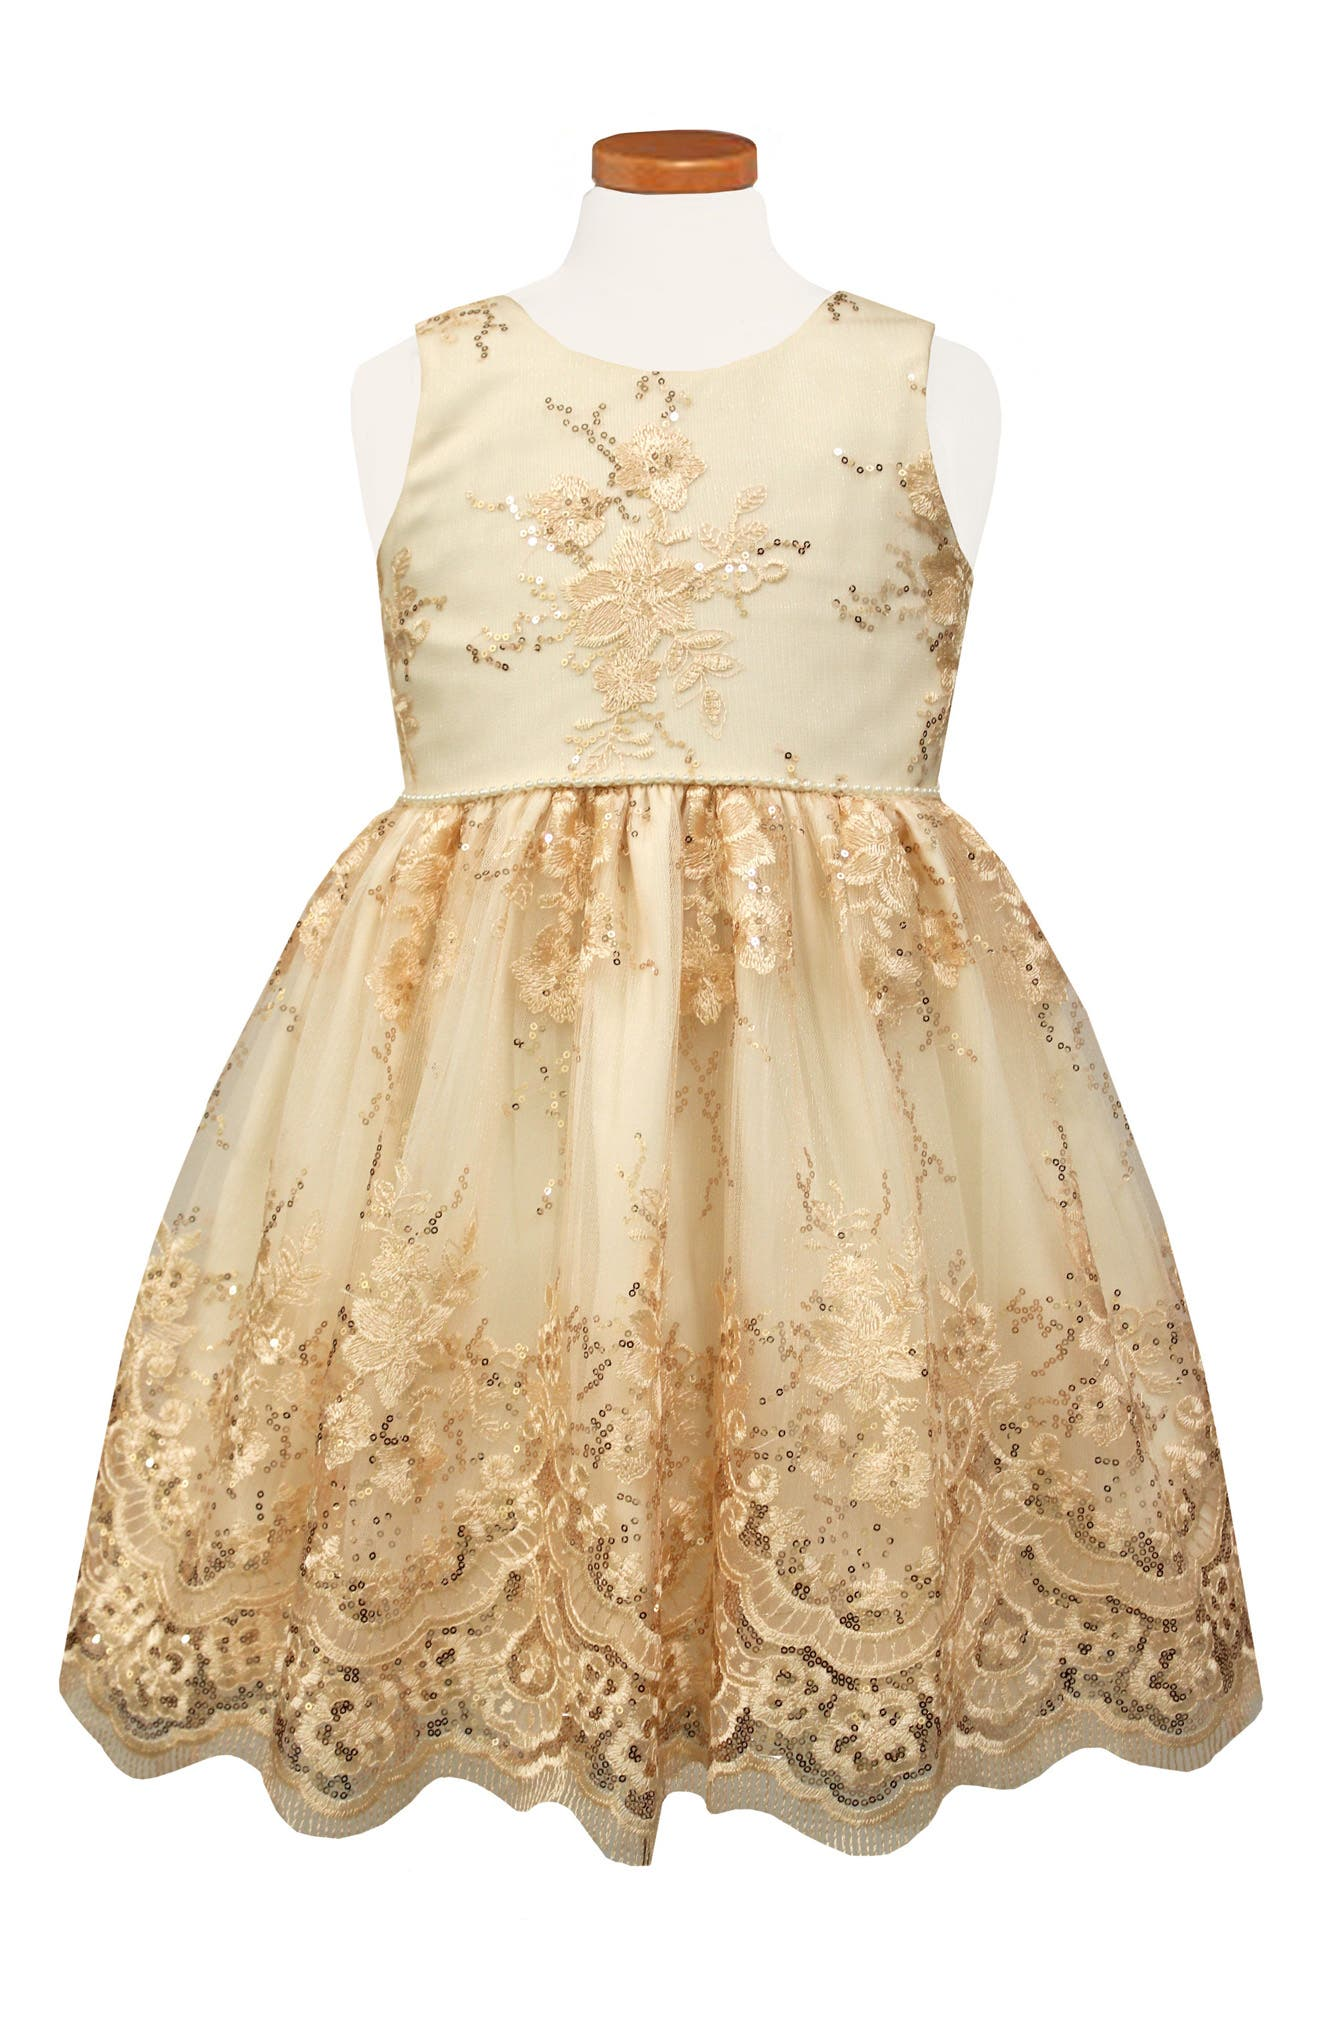 Sorbet Embroidered Tulle Party Dress (Toddler Girls & Little Girls)